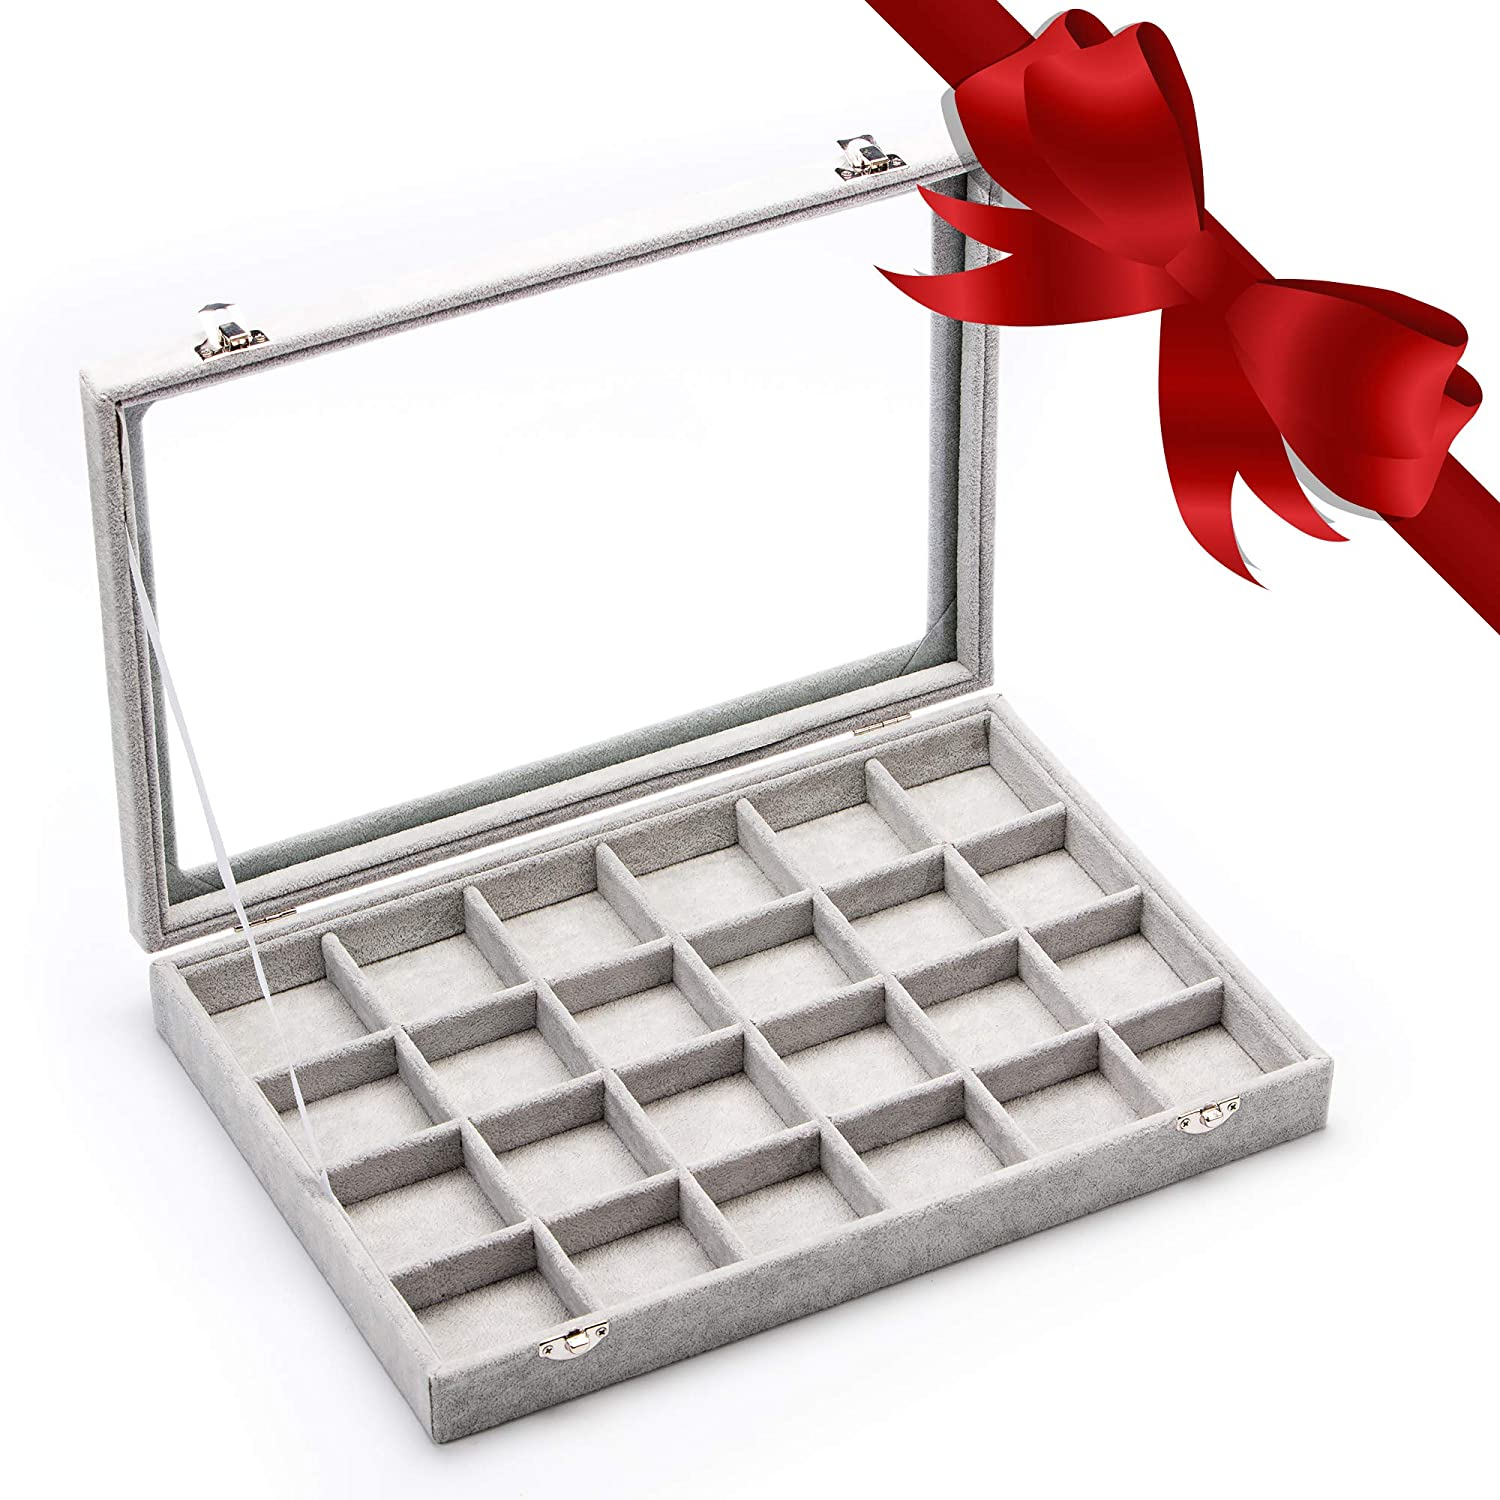 NC11 SHOP The Best Gifts for Wife Velvet Clear Lid 24 Grid Jewelry Tray Showcase Display Storage Box Rings Earrings Brooch Buttons Watch Sunglasses Organizer Glass Top Lockable Removable Case